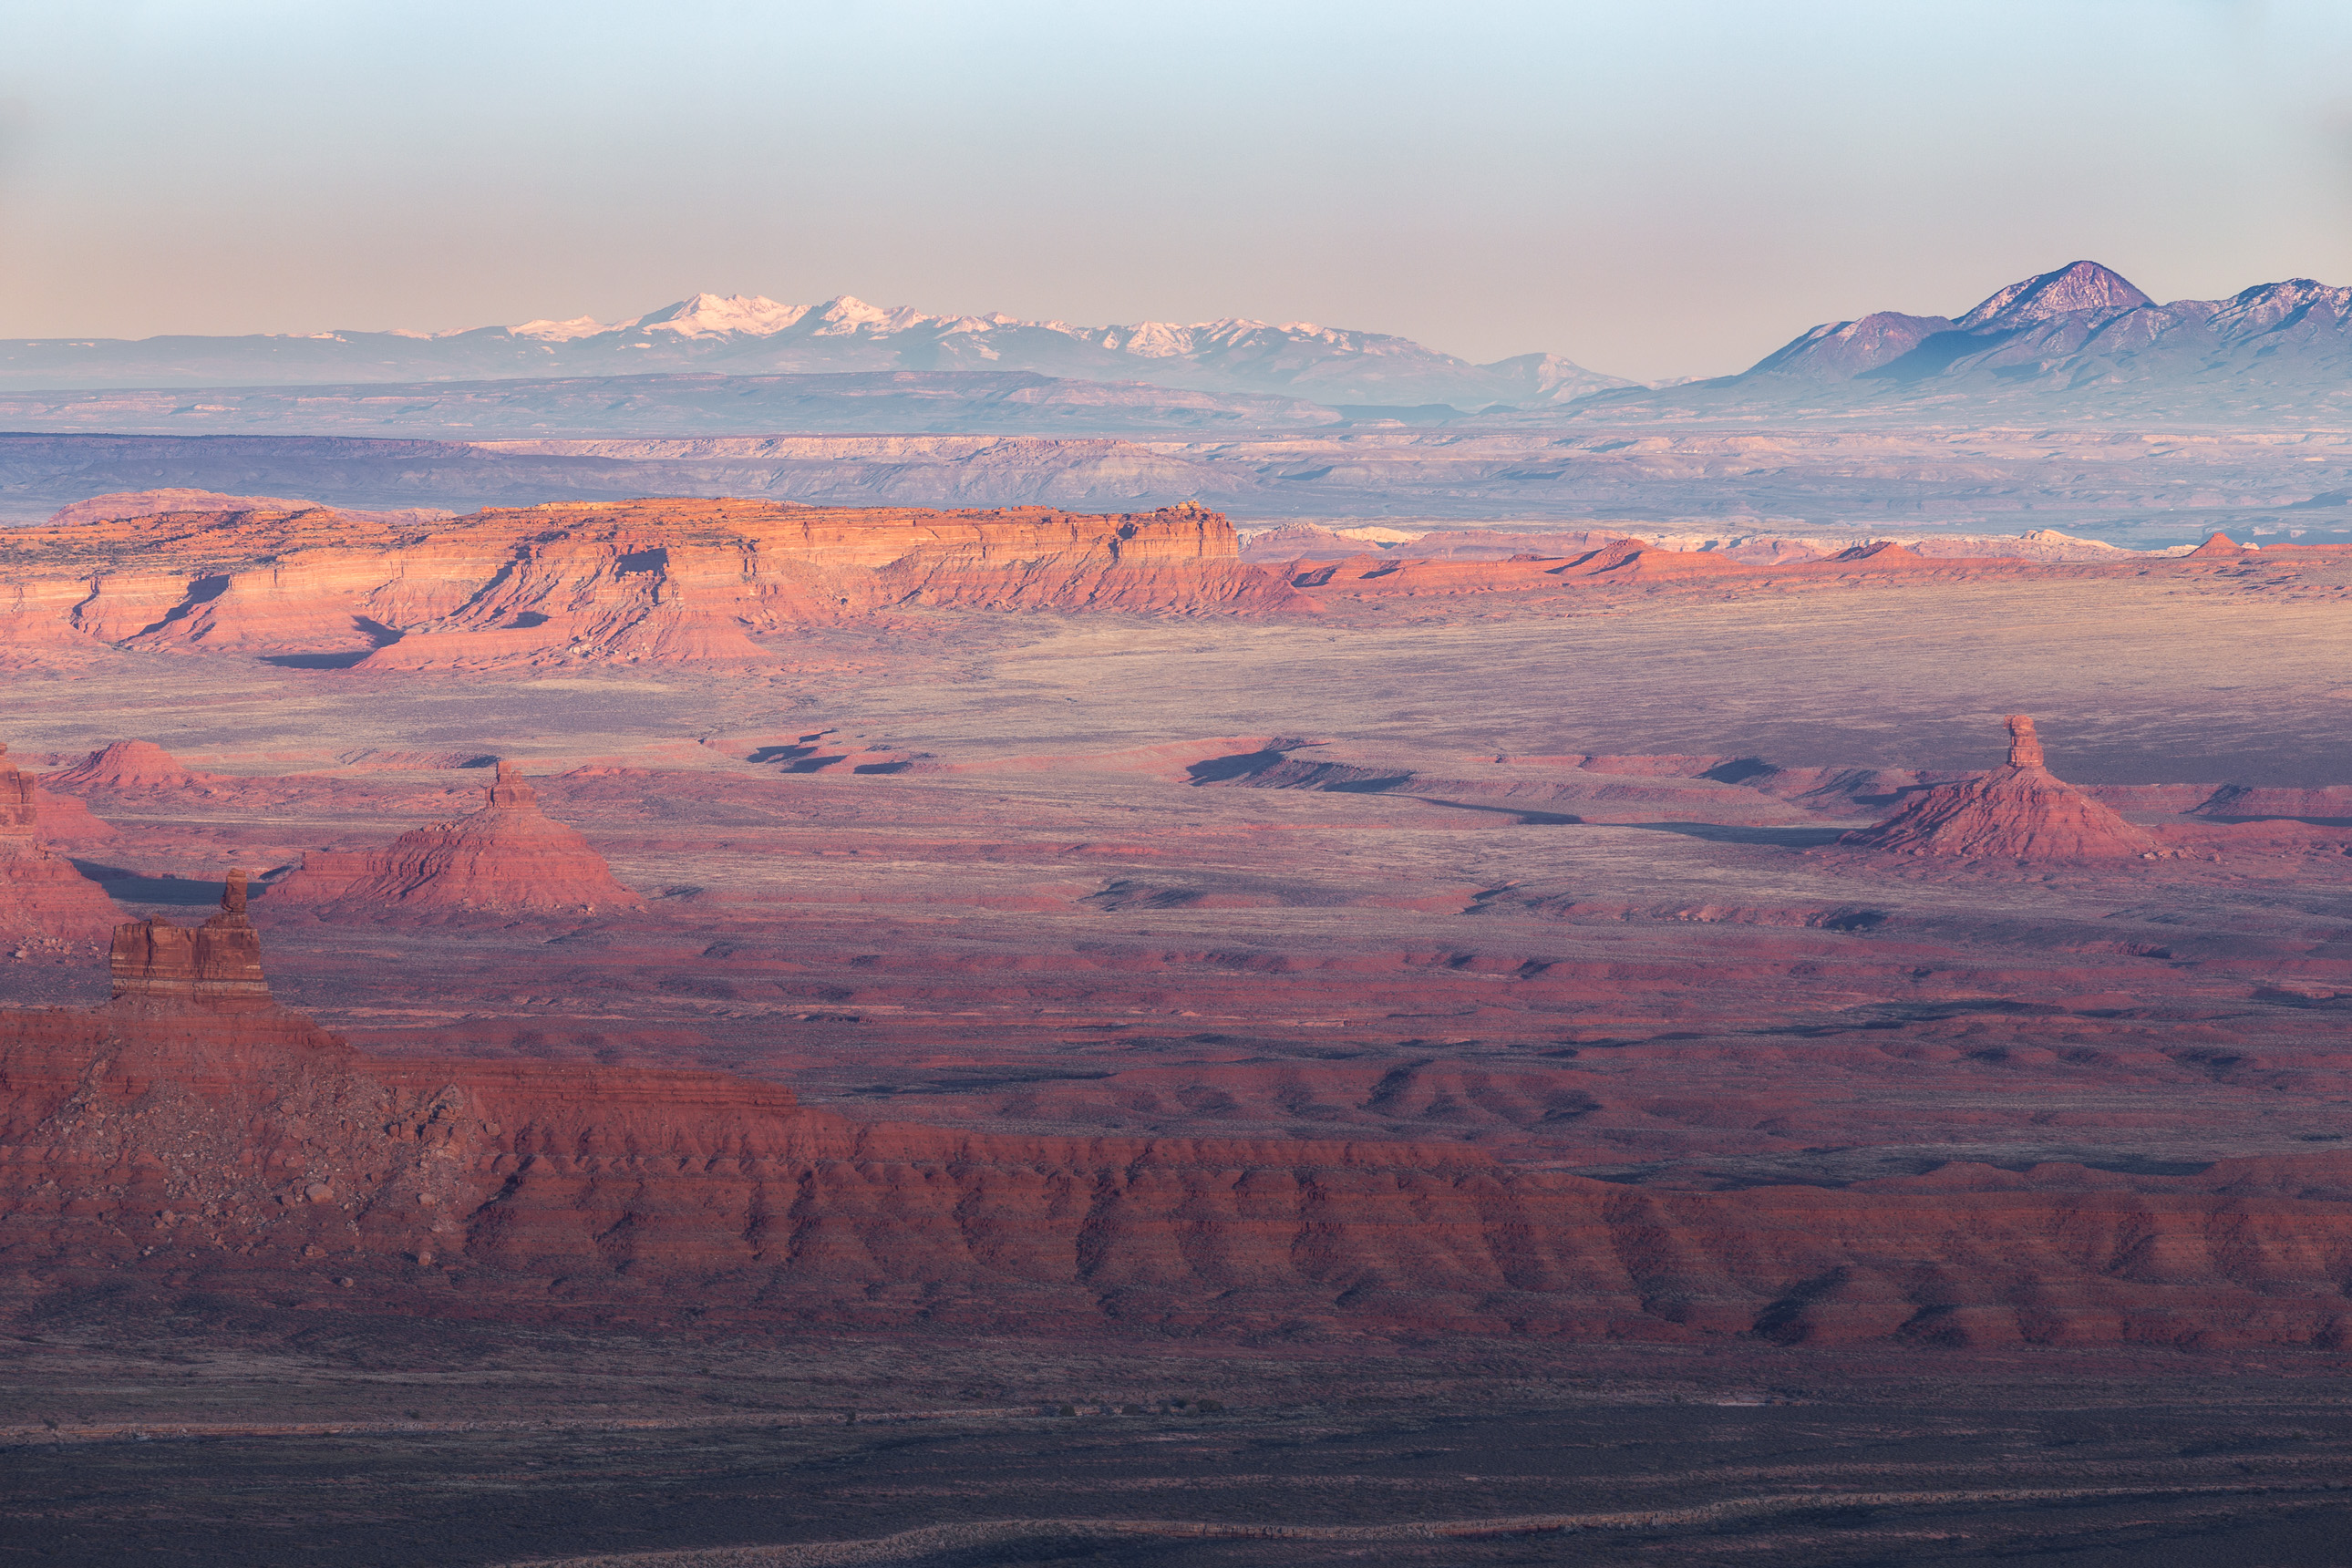 Valley of the Gods from the Moki Dugway